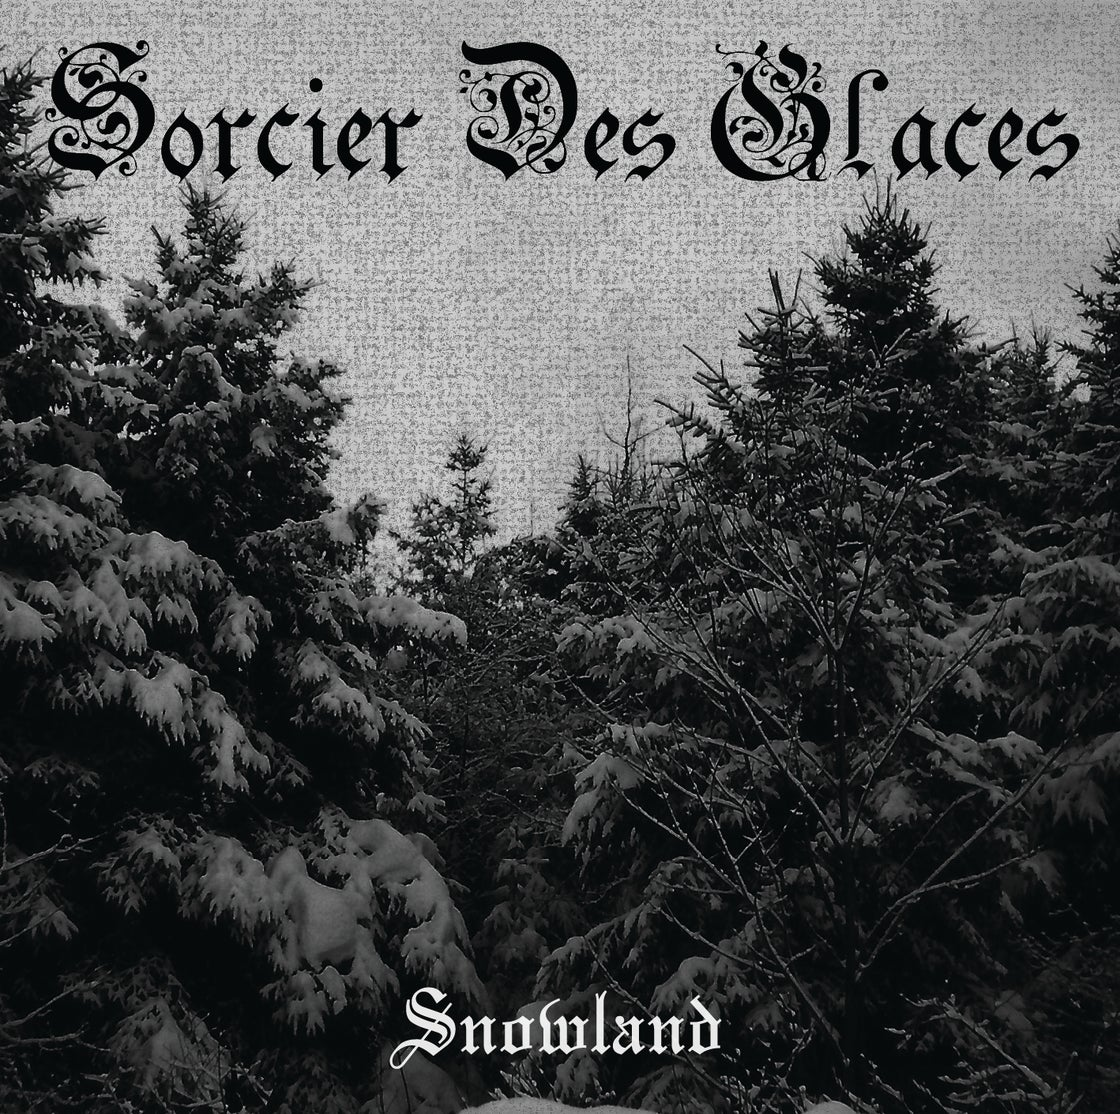 Image of Sorcier Des Glaces - Snowland CD jewel case & Digipak limited edition